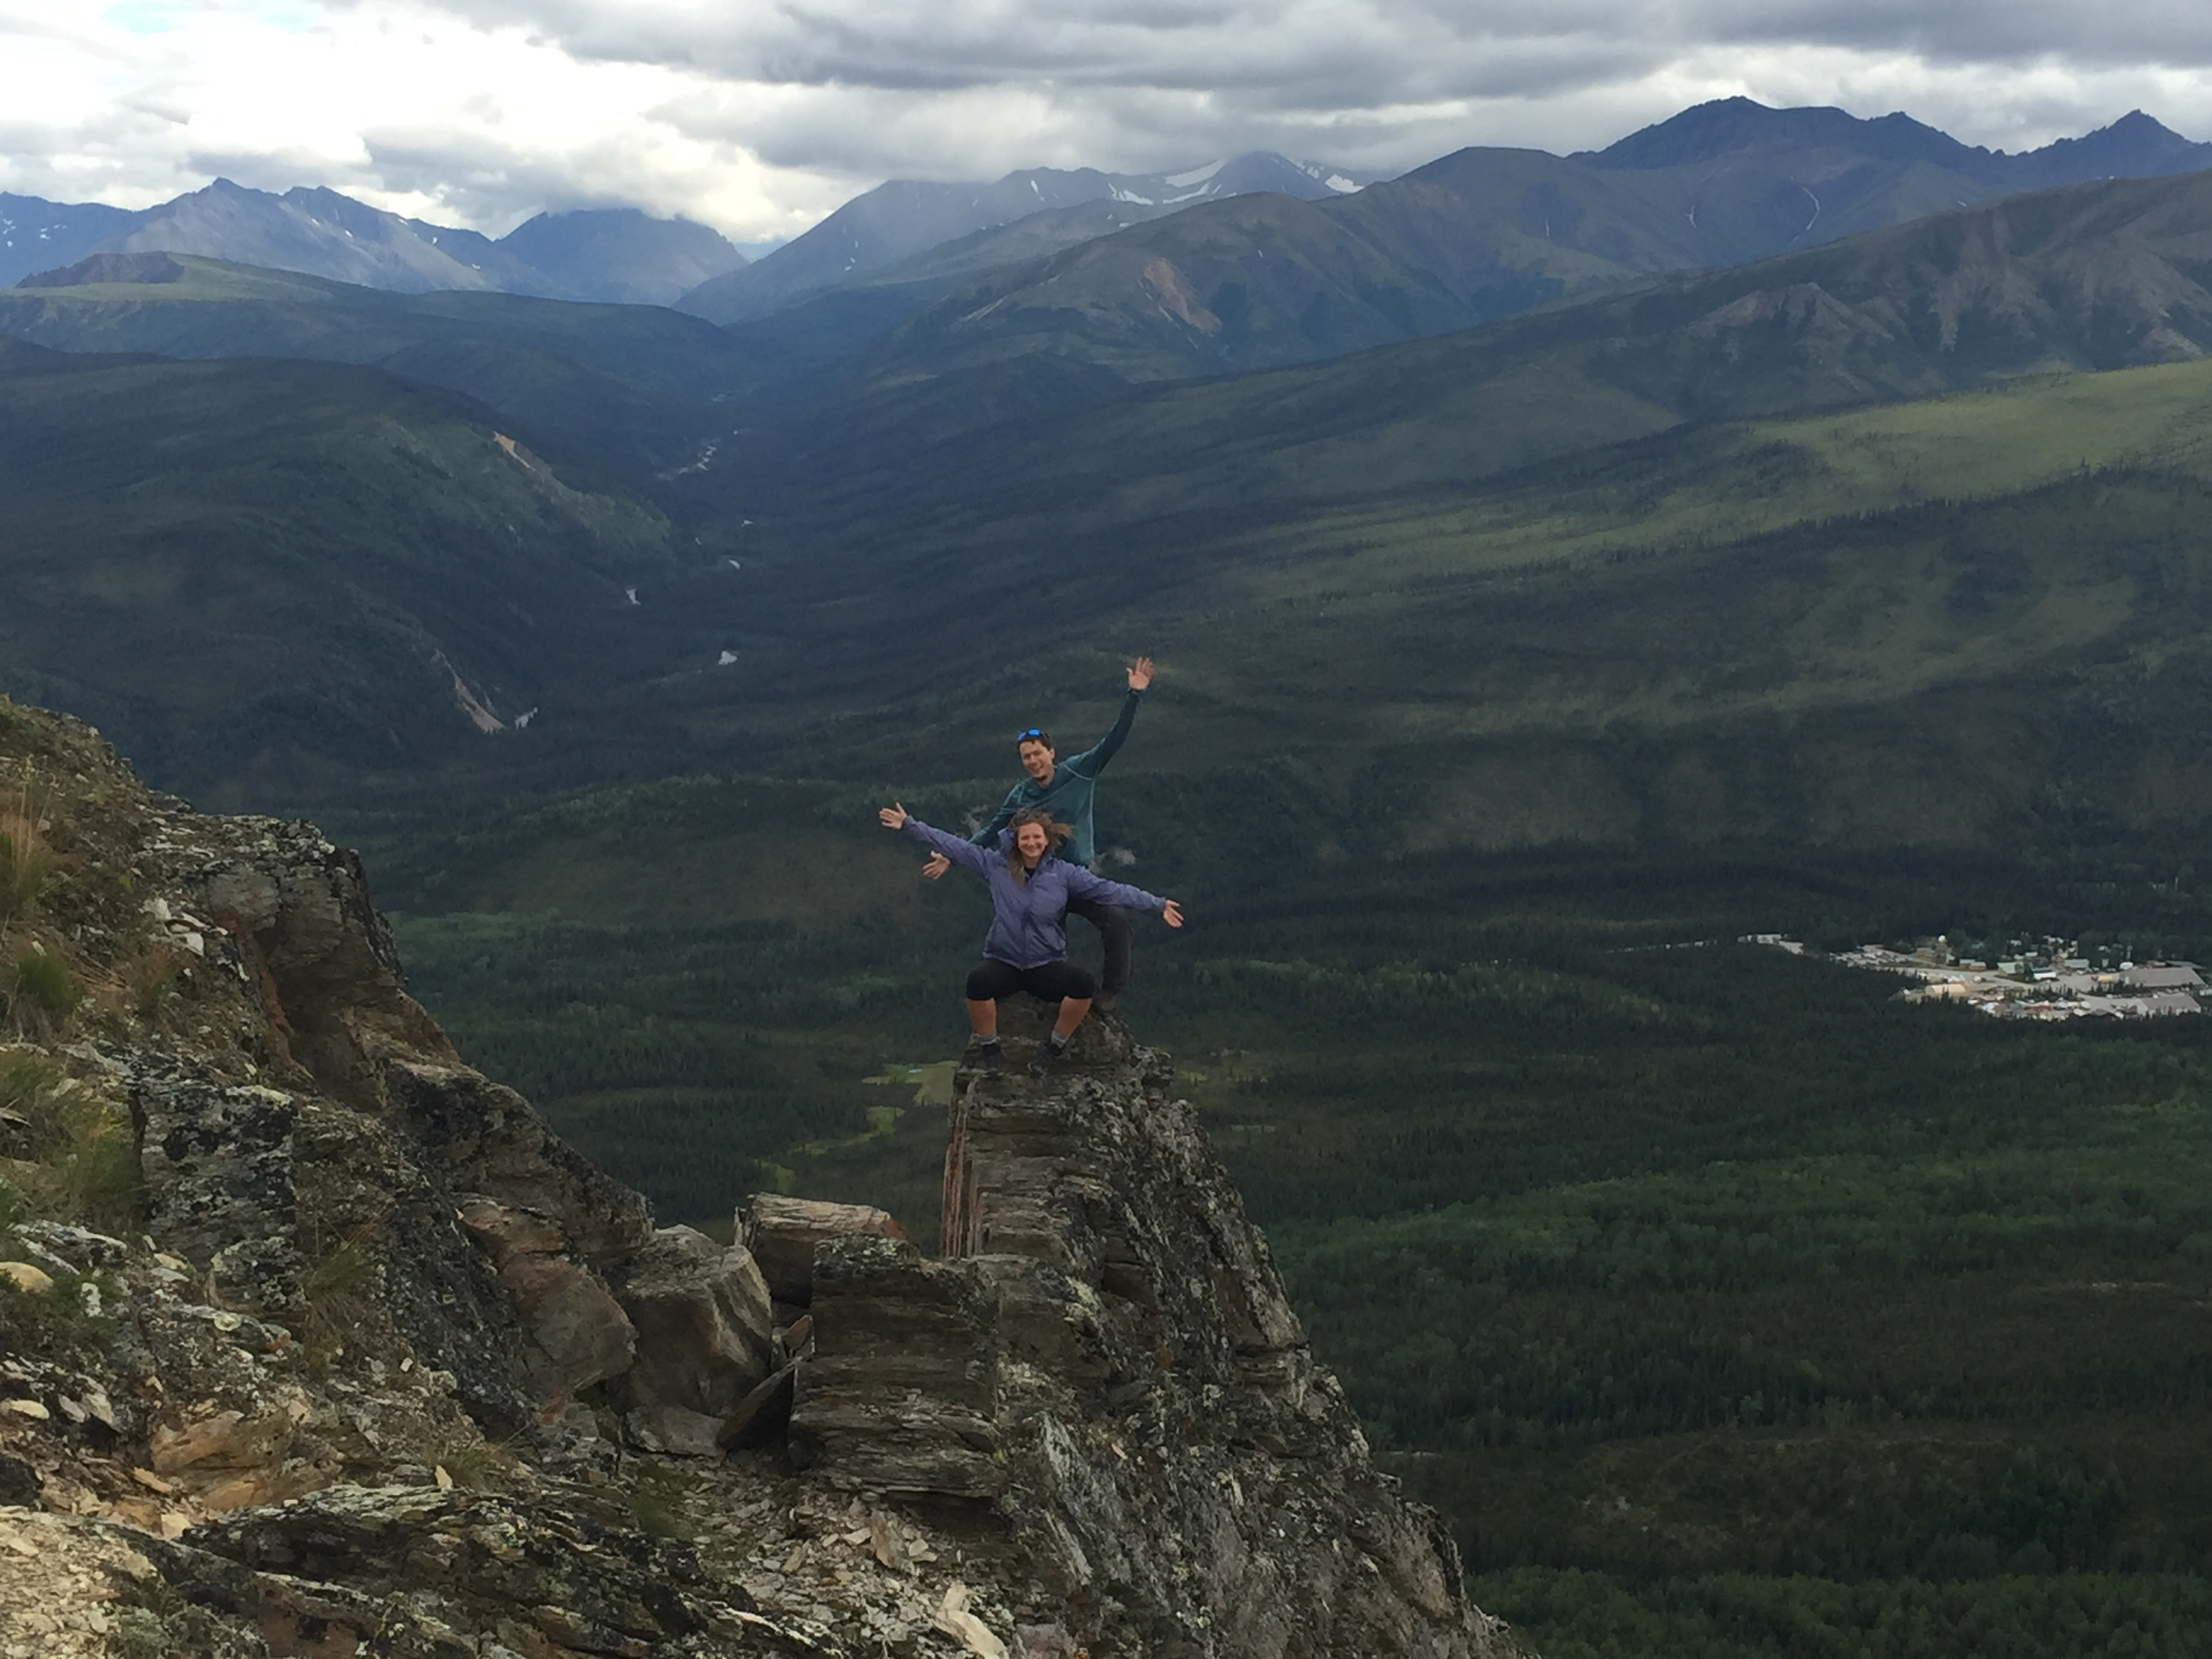 Denali National Park Video: Much more than a mountain